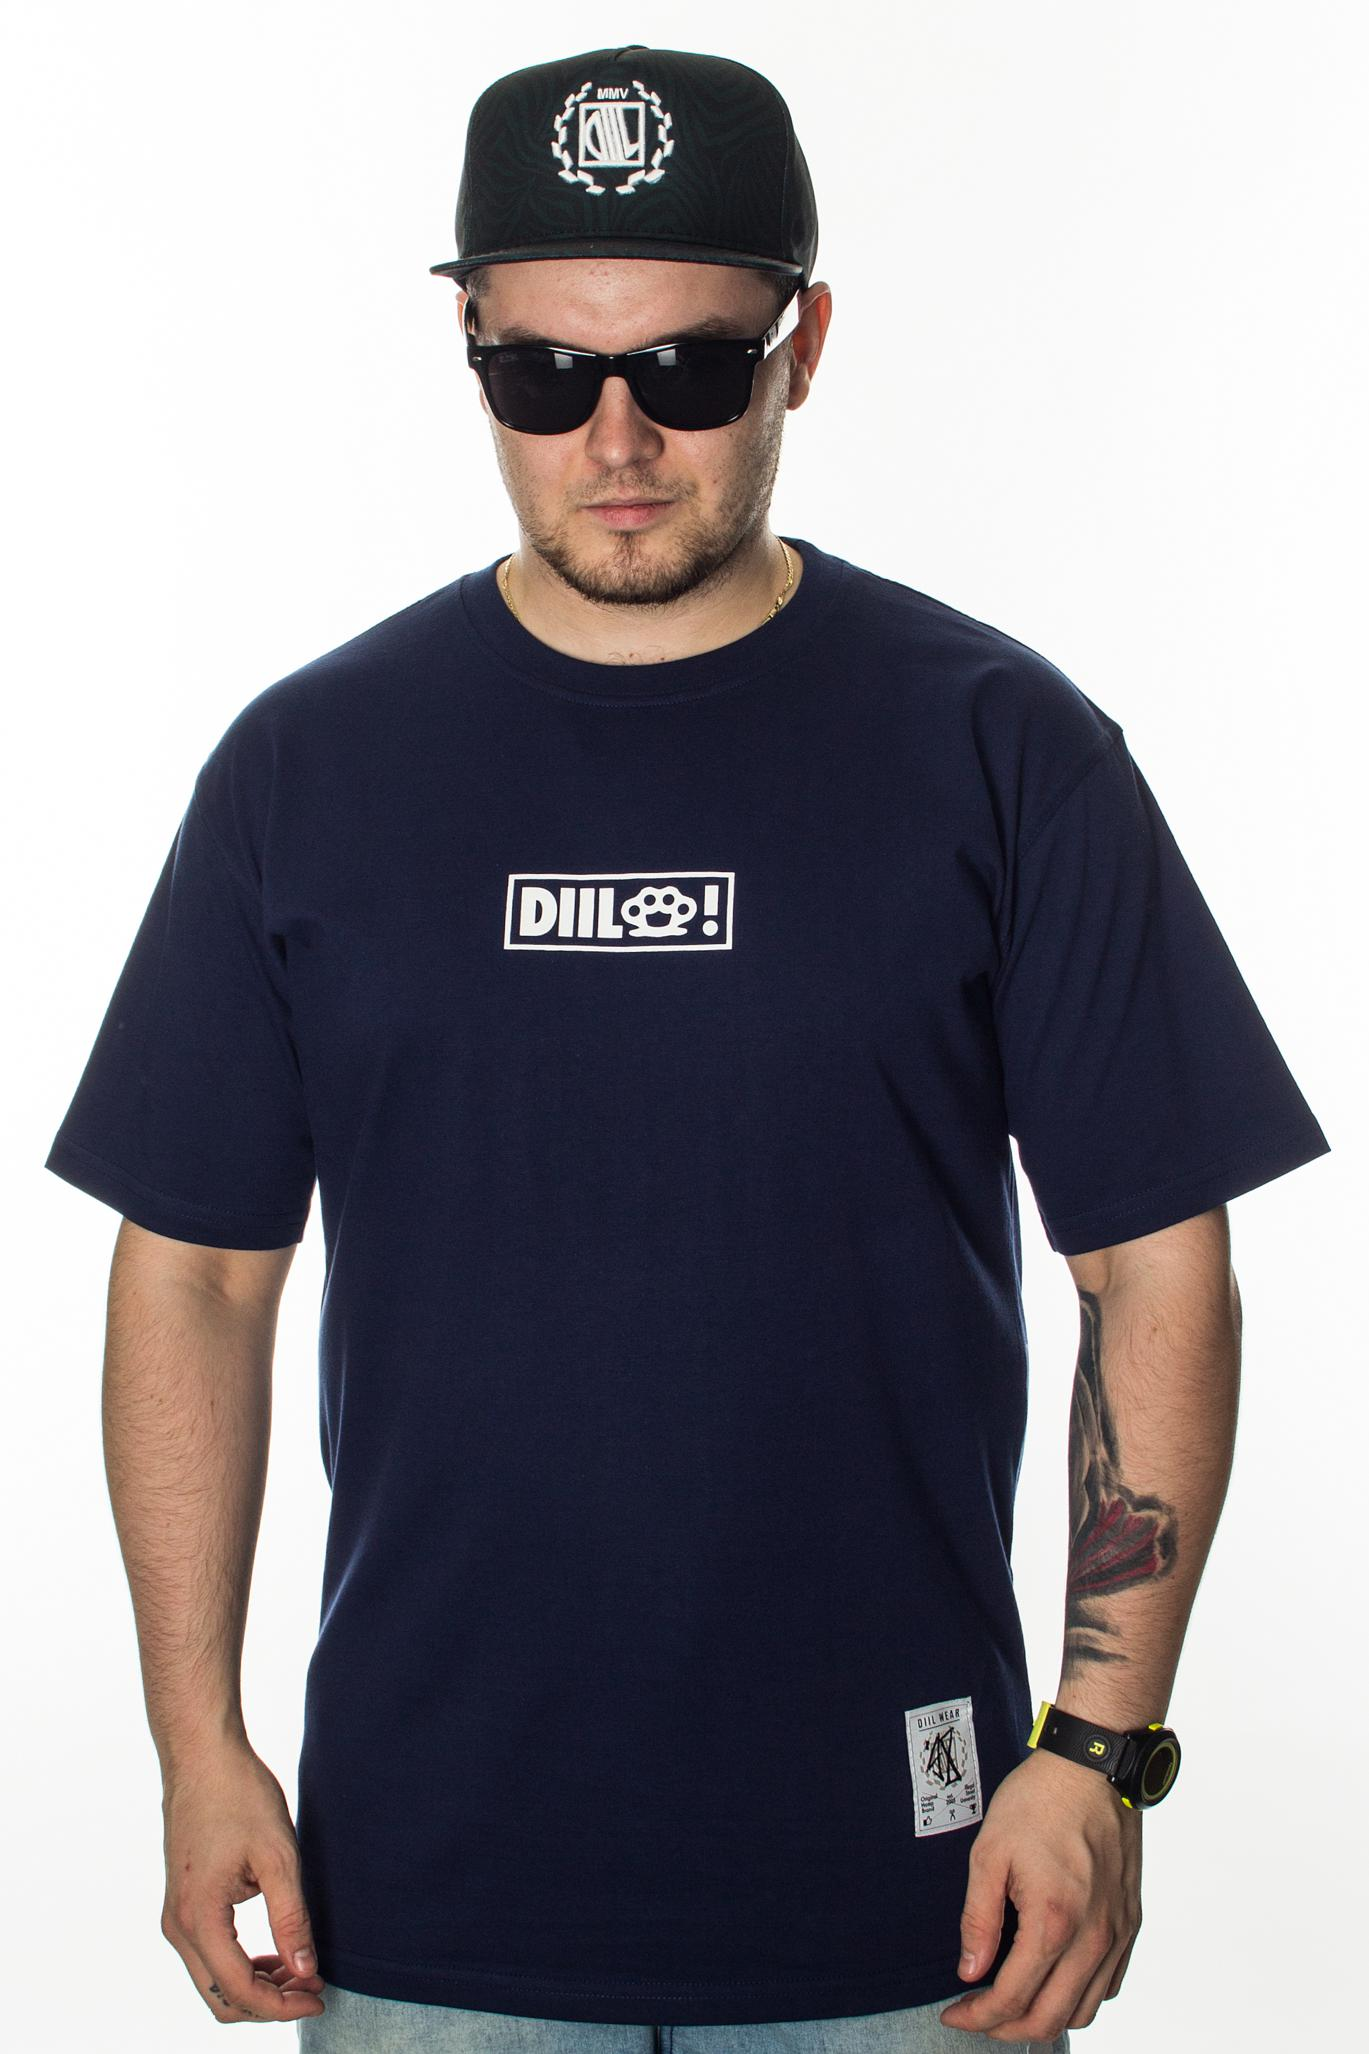 DIIL T-SHIRT SMALL THING NAVY